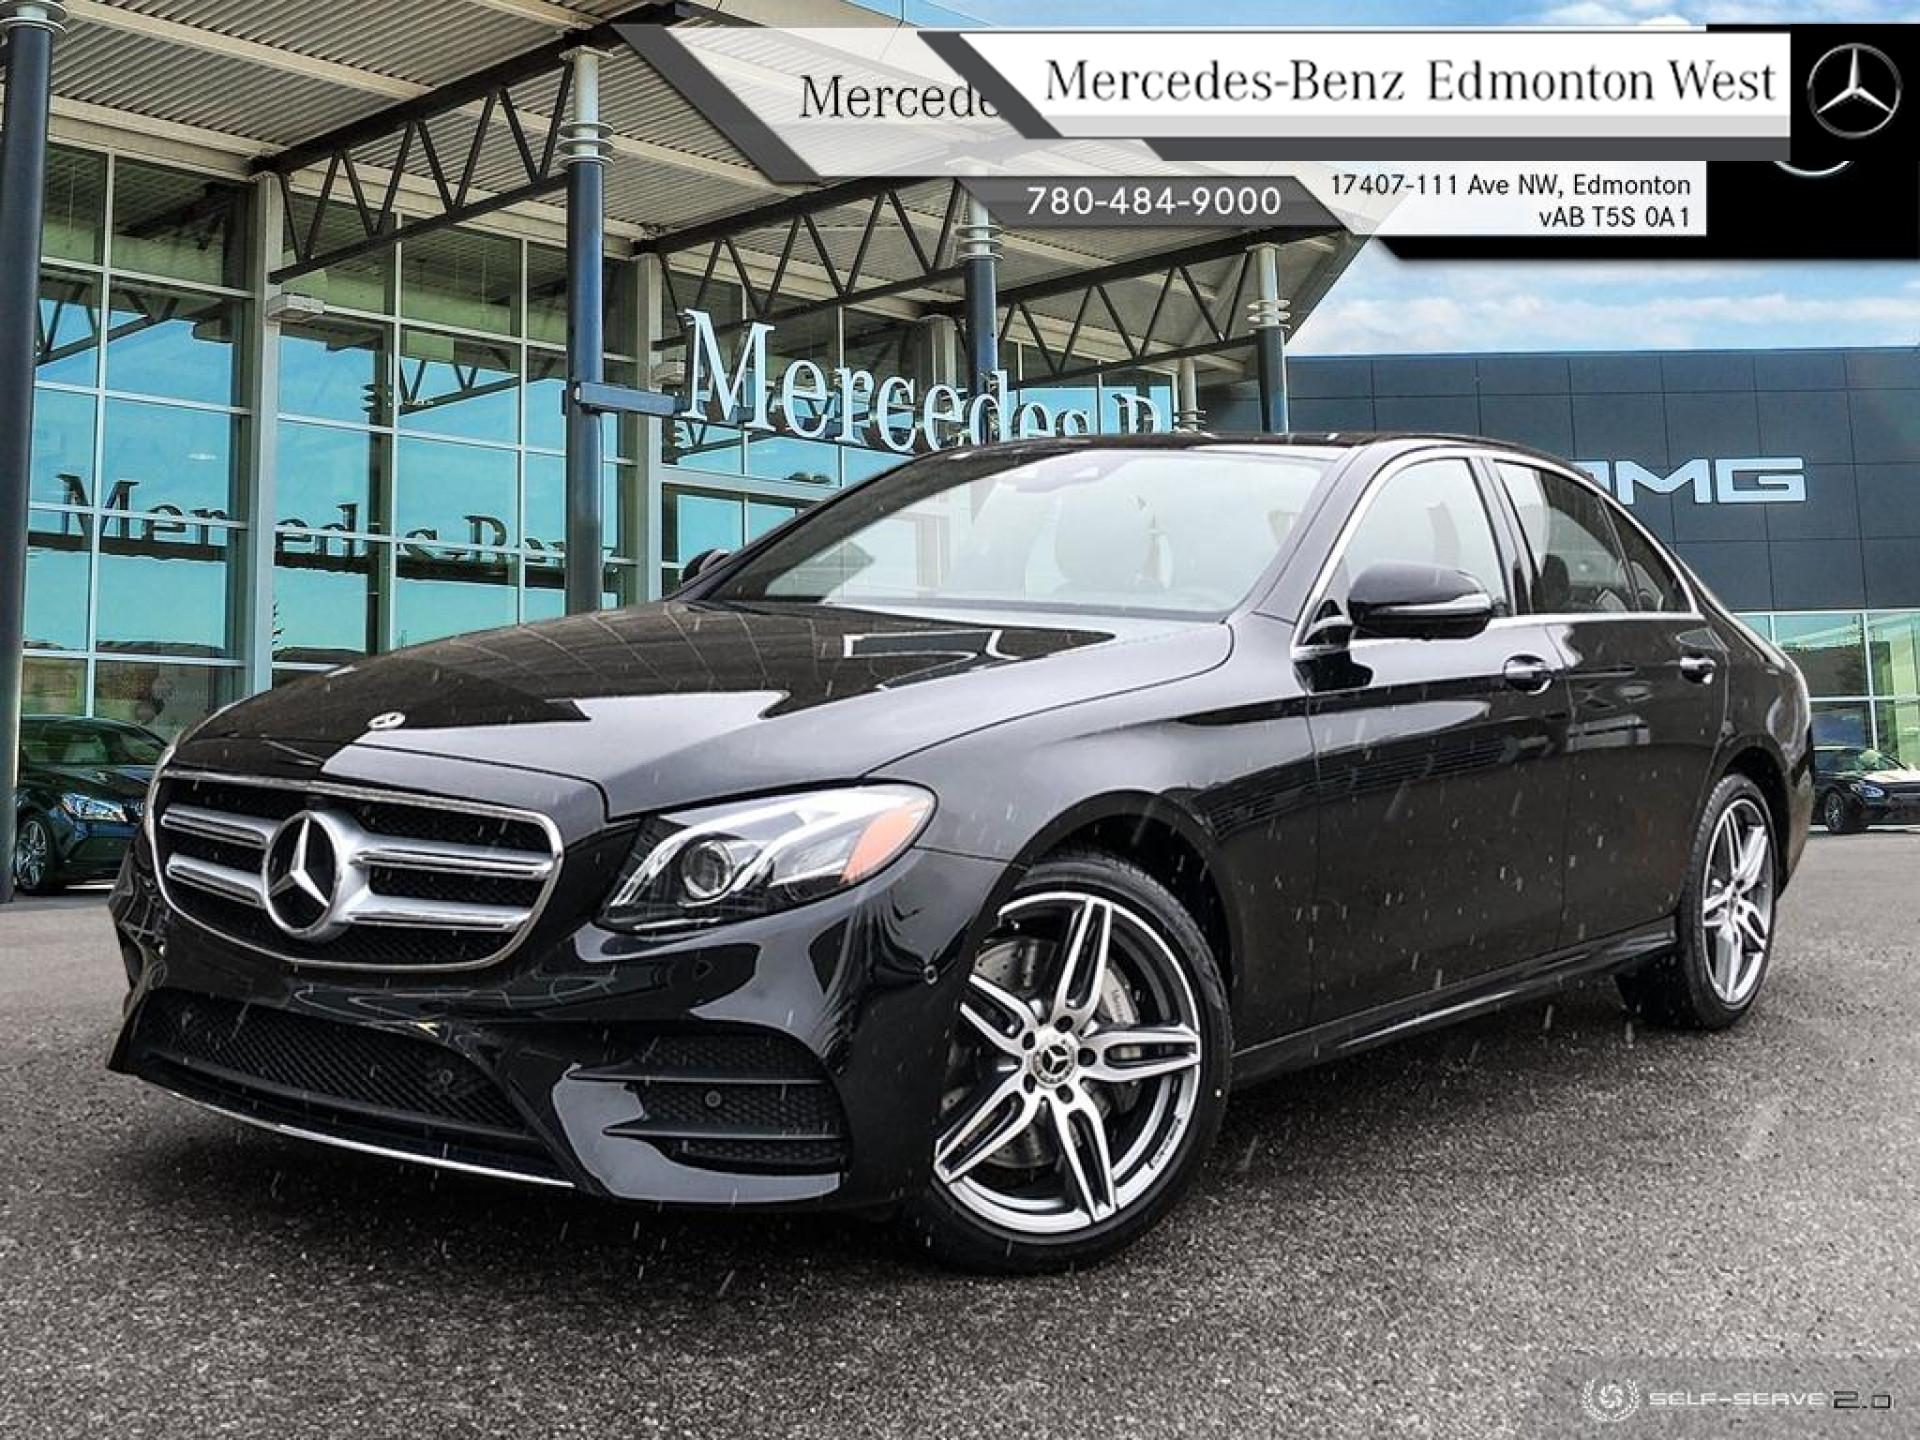 Pre-Owned 2020 Mercedes Benz E-Class E 350 4MATIC Sedan Executive vehicle, Premium Plus Equipment, Technology Package